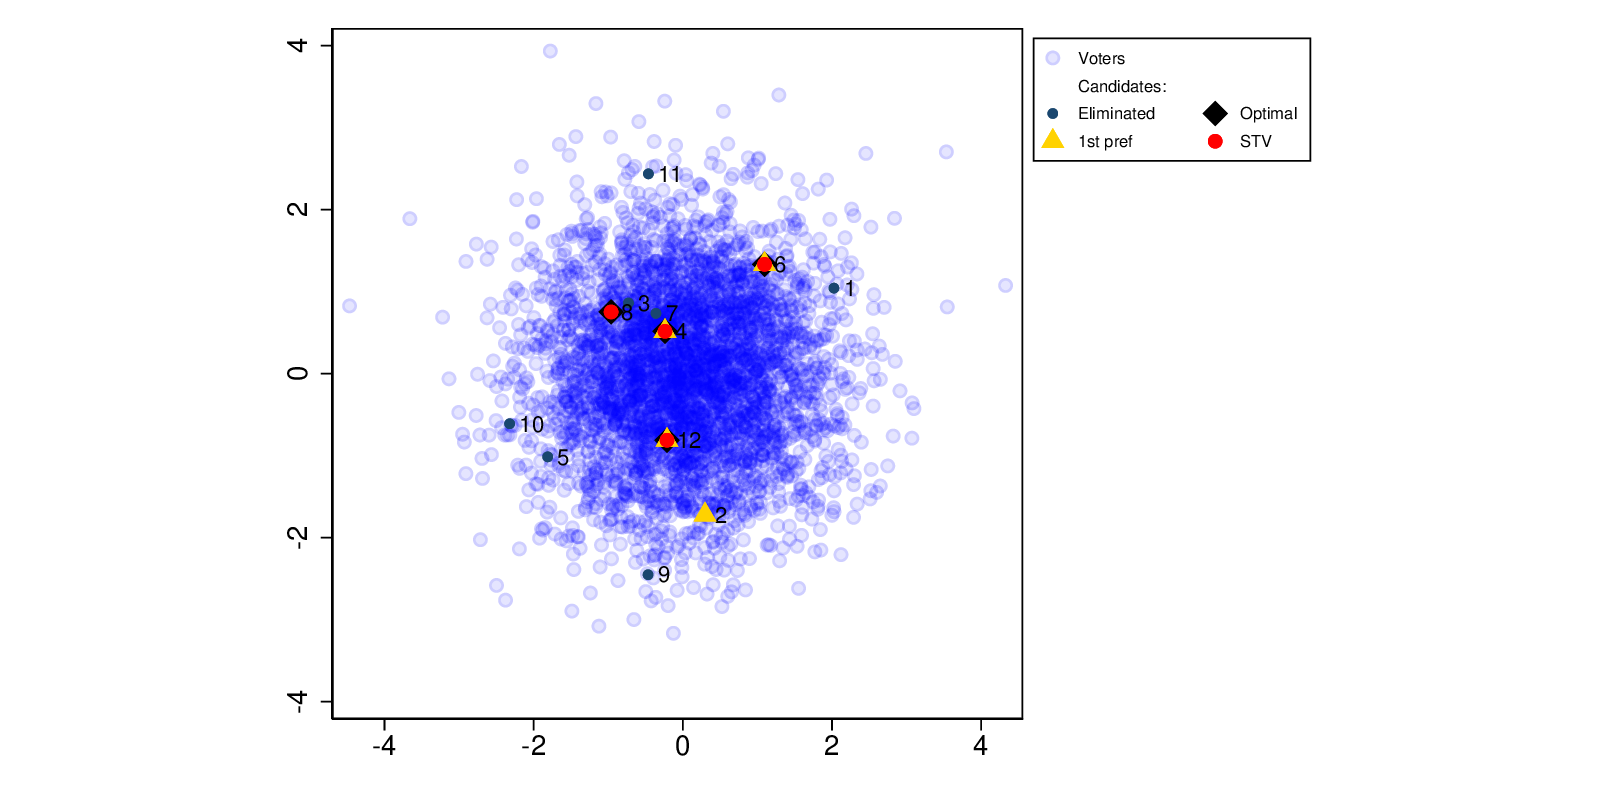 Scatter plot showing voters and candidates by status